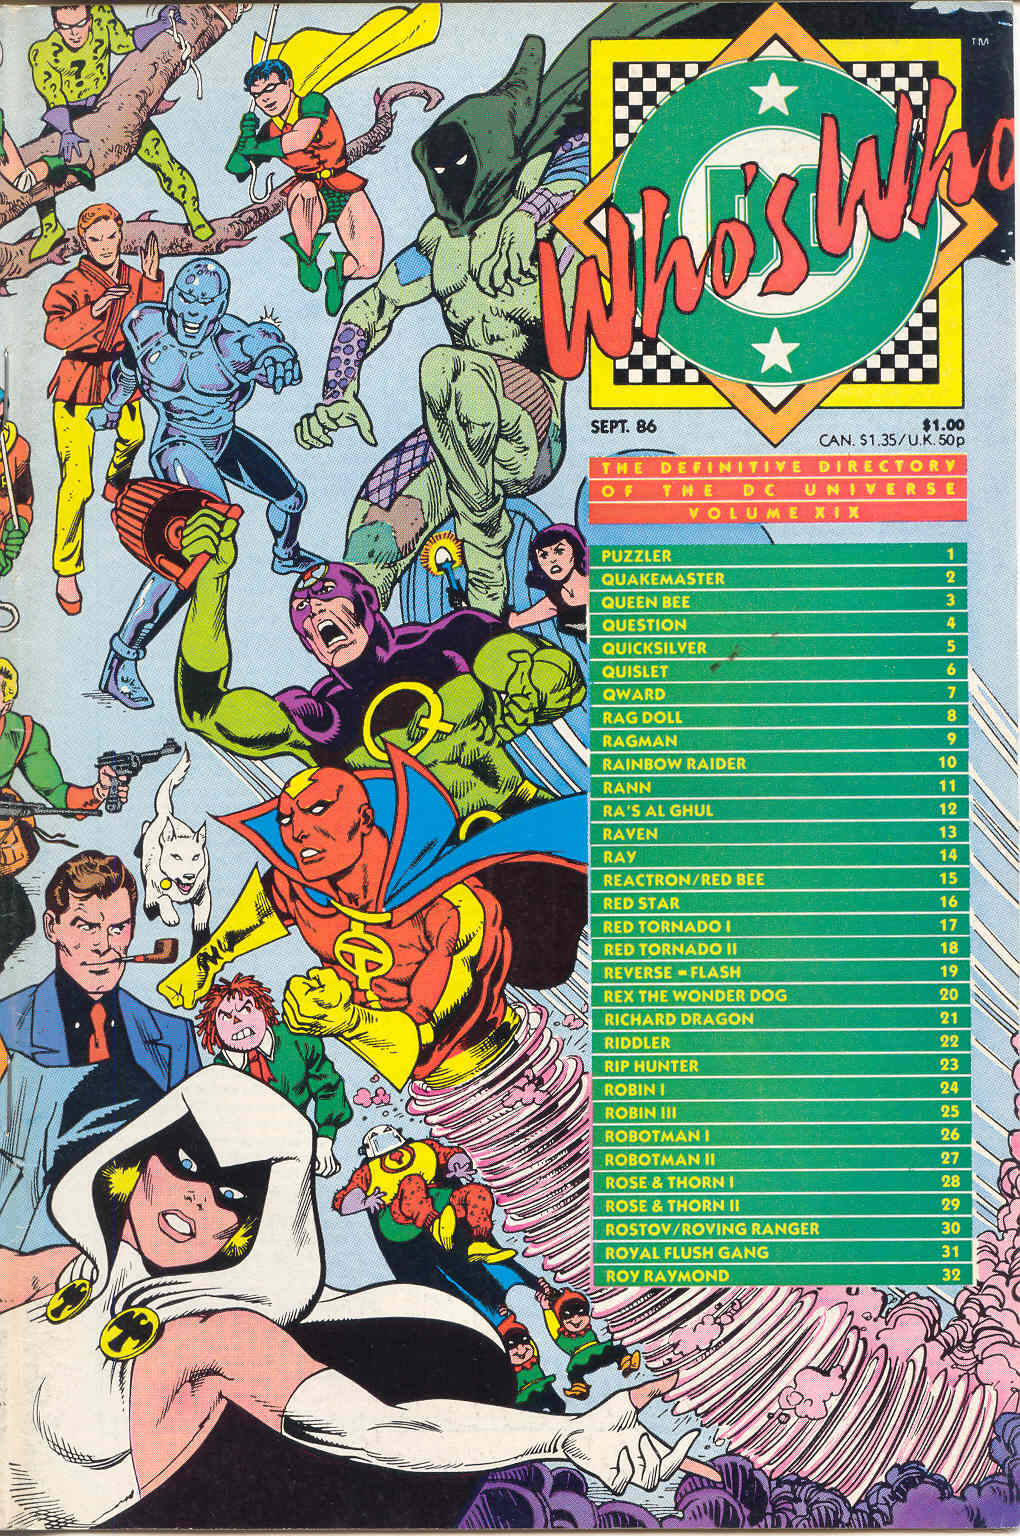 Whos Who: The Definitive Directory of the DC Universe 19 Page 1